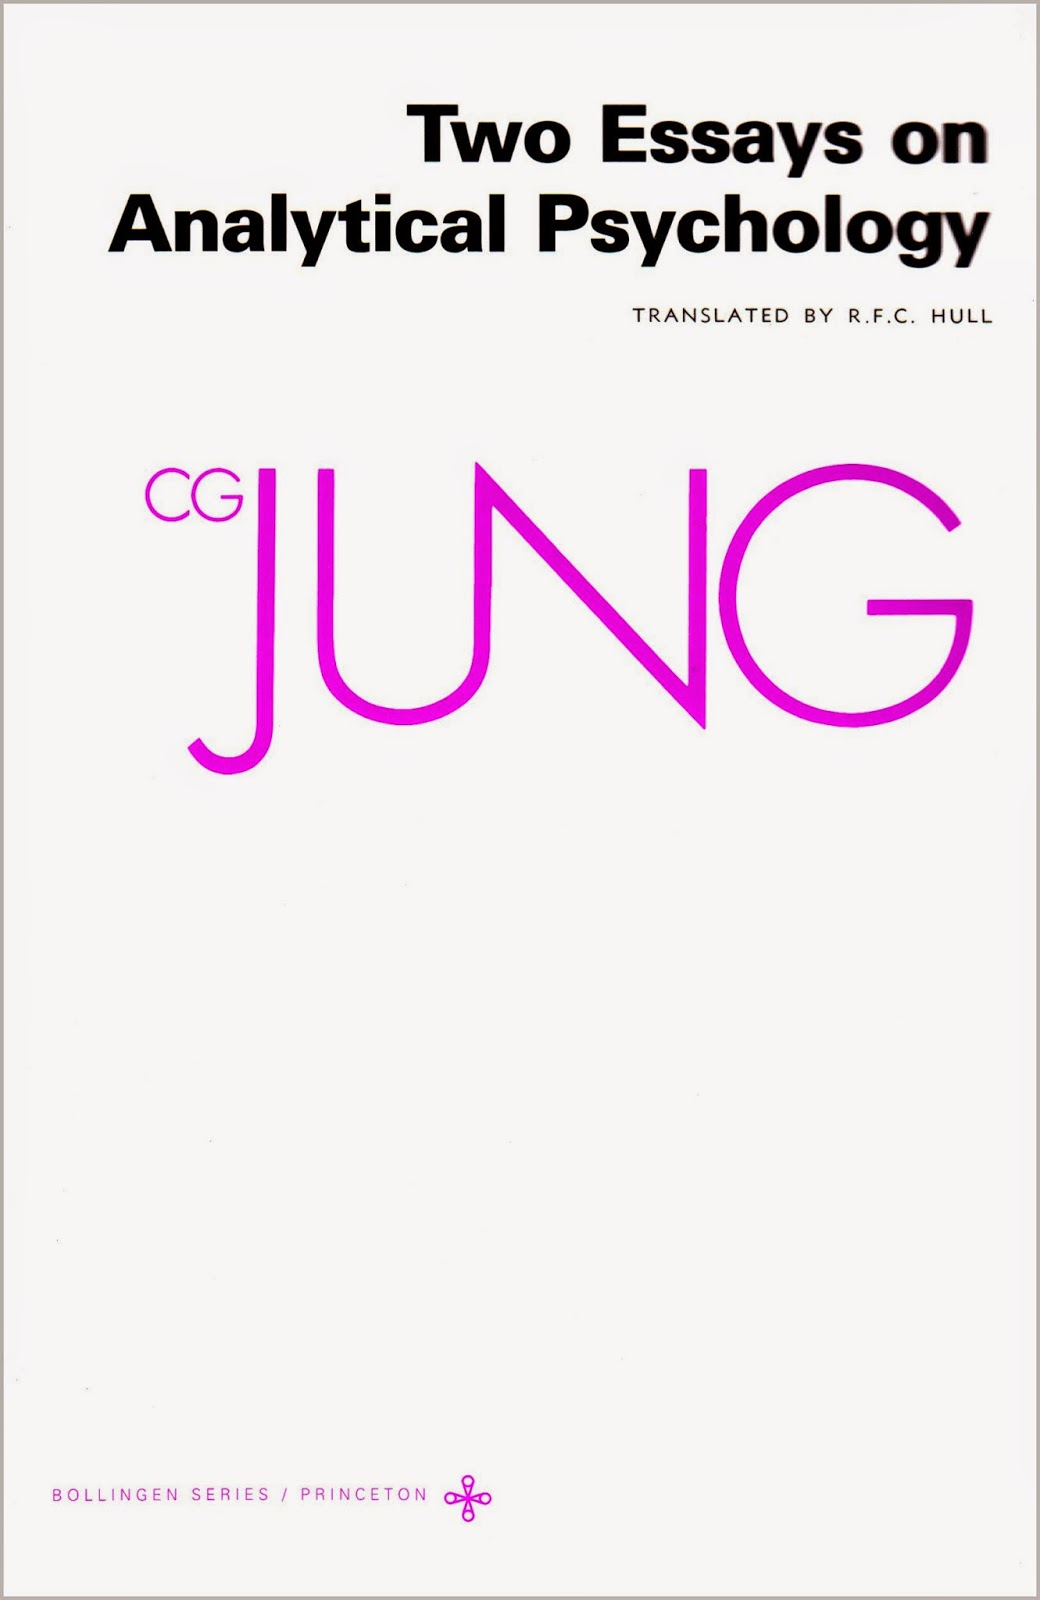 jung two essays Carl jung two essays analytical psychology club, creative writing seminar philippines 2017, universities that do creative writing by posted march 11, 2018.